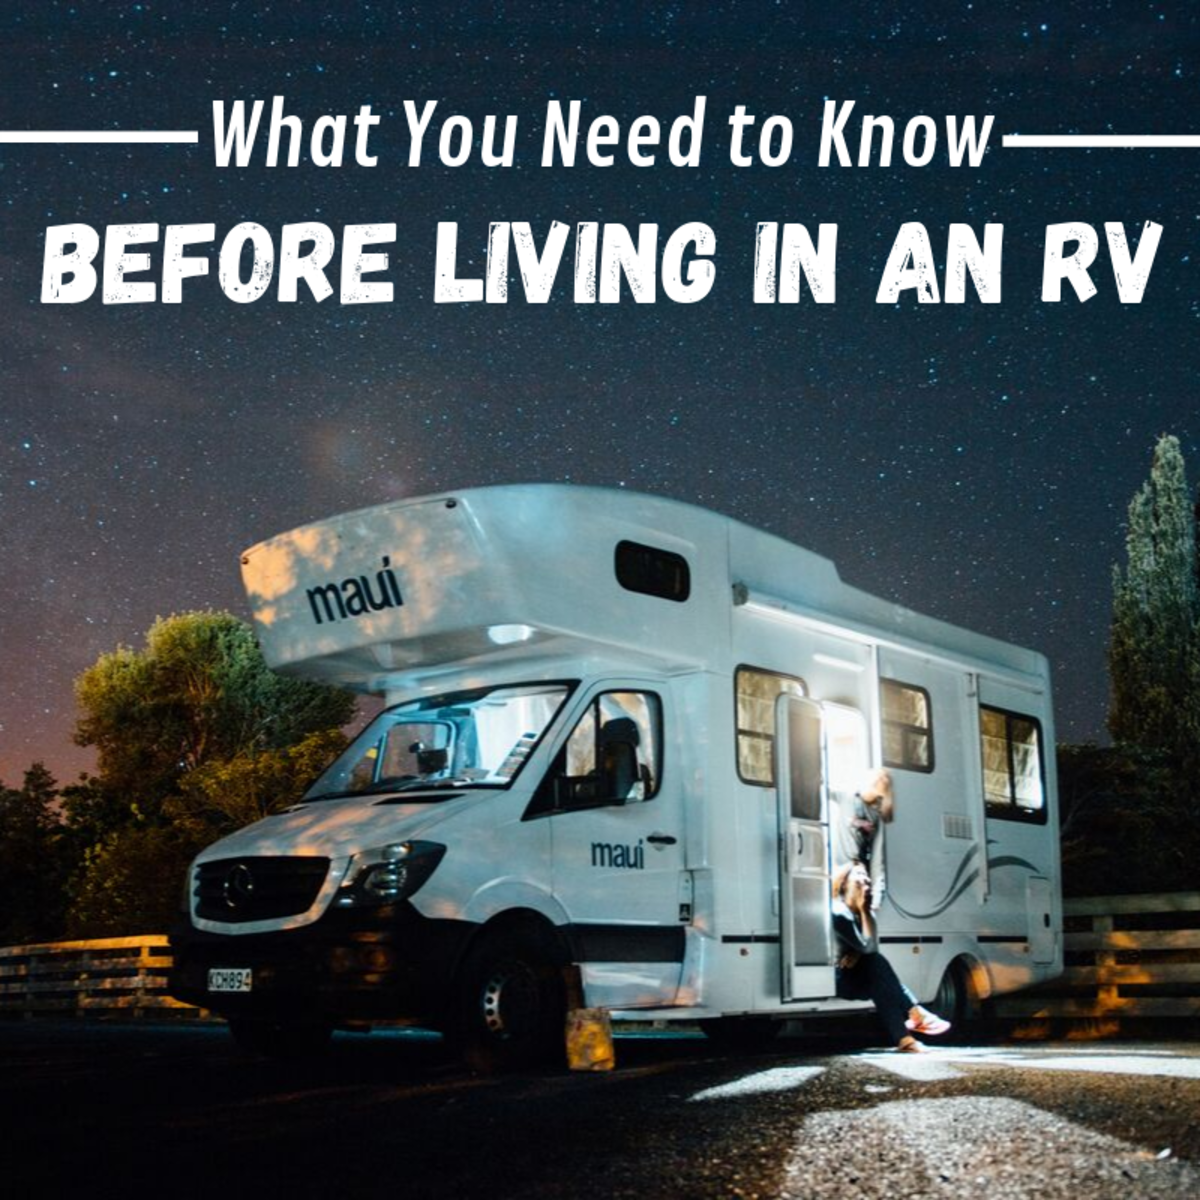 Living the mobile life in a coach or RV can be a life-changing experience, but it does come with some drawbacks. Find out if RV living is right for you.